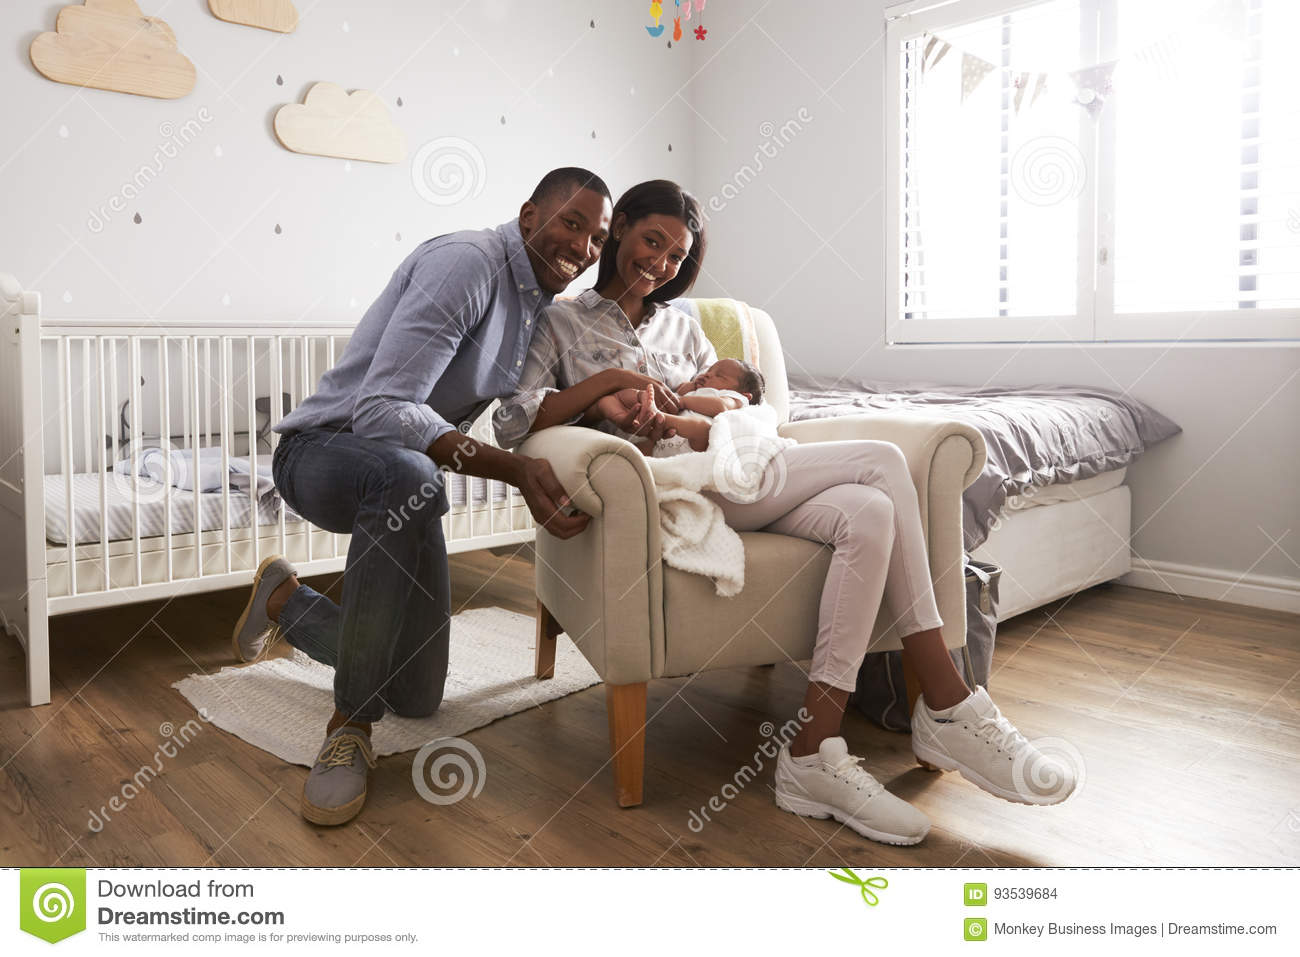 Download Portrait Of Parents Home From Hospital With Newborn Baby Stock Photo - Image of blanket, baby: 93539684